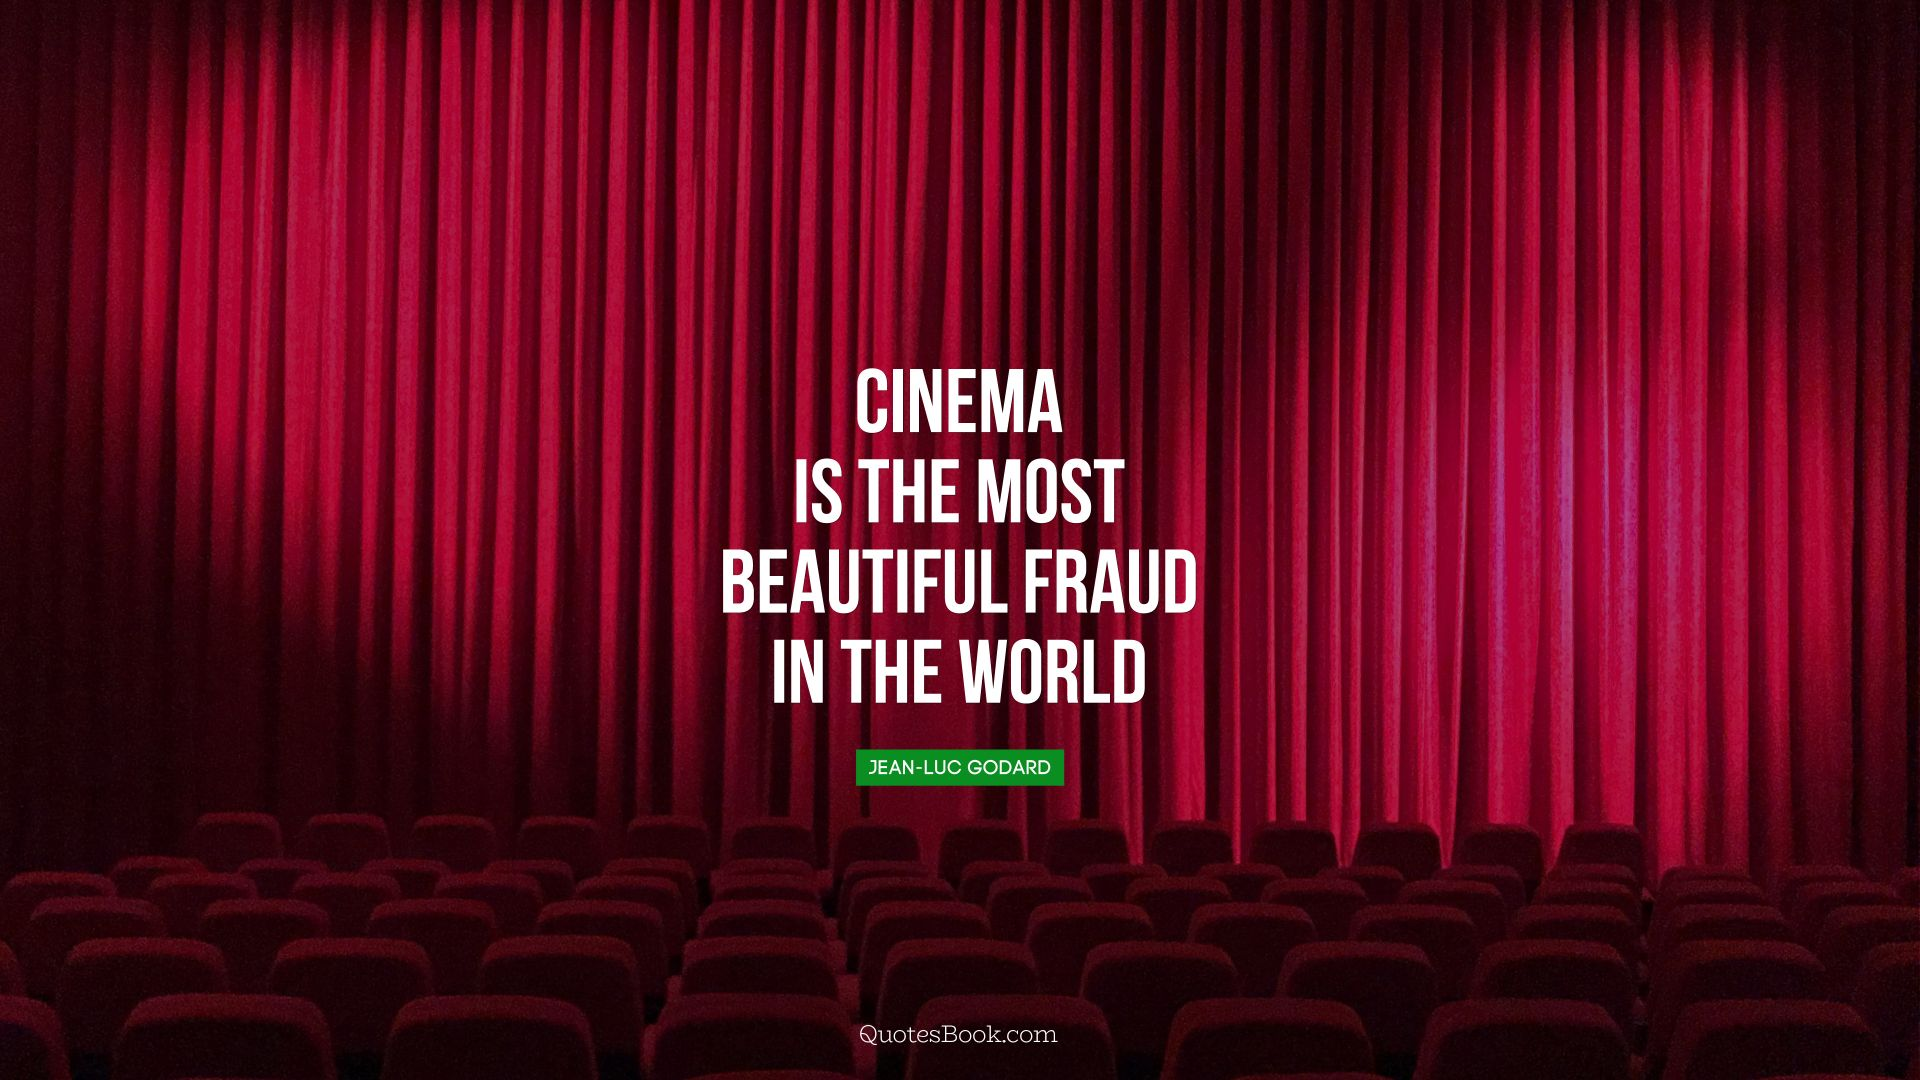 Cinema is the most beautiful fraud in the world. - Quote by Jean-Luc Godard